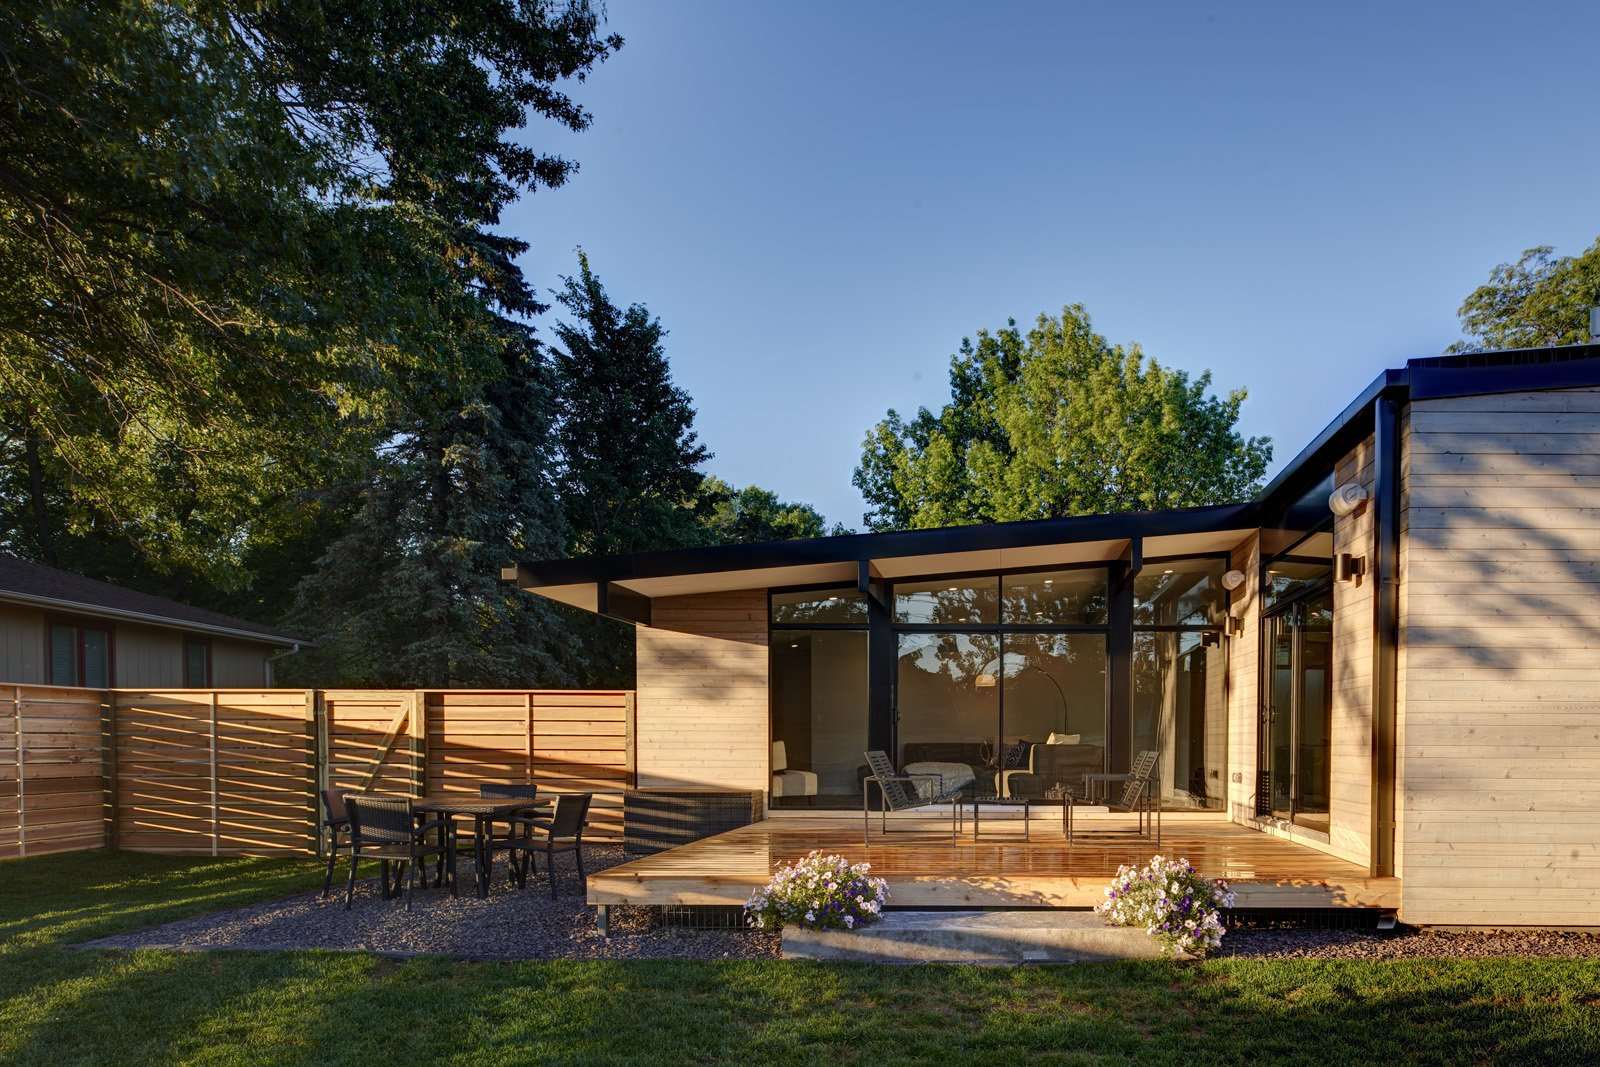 Exterior, House Building Type, Metal Siding Material, and Wood Siding Material A large deck provides exterior living space off the kitchen.  Koser I by Neumann Monson Architects